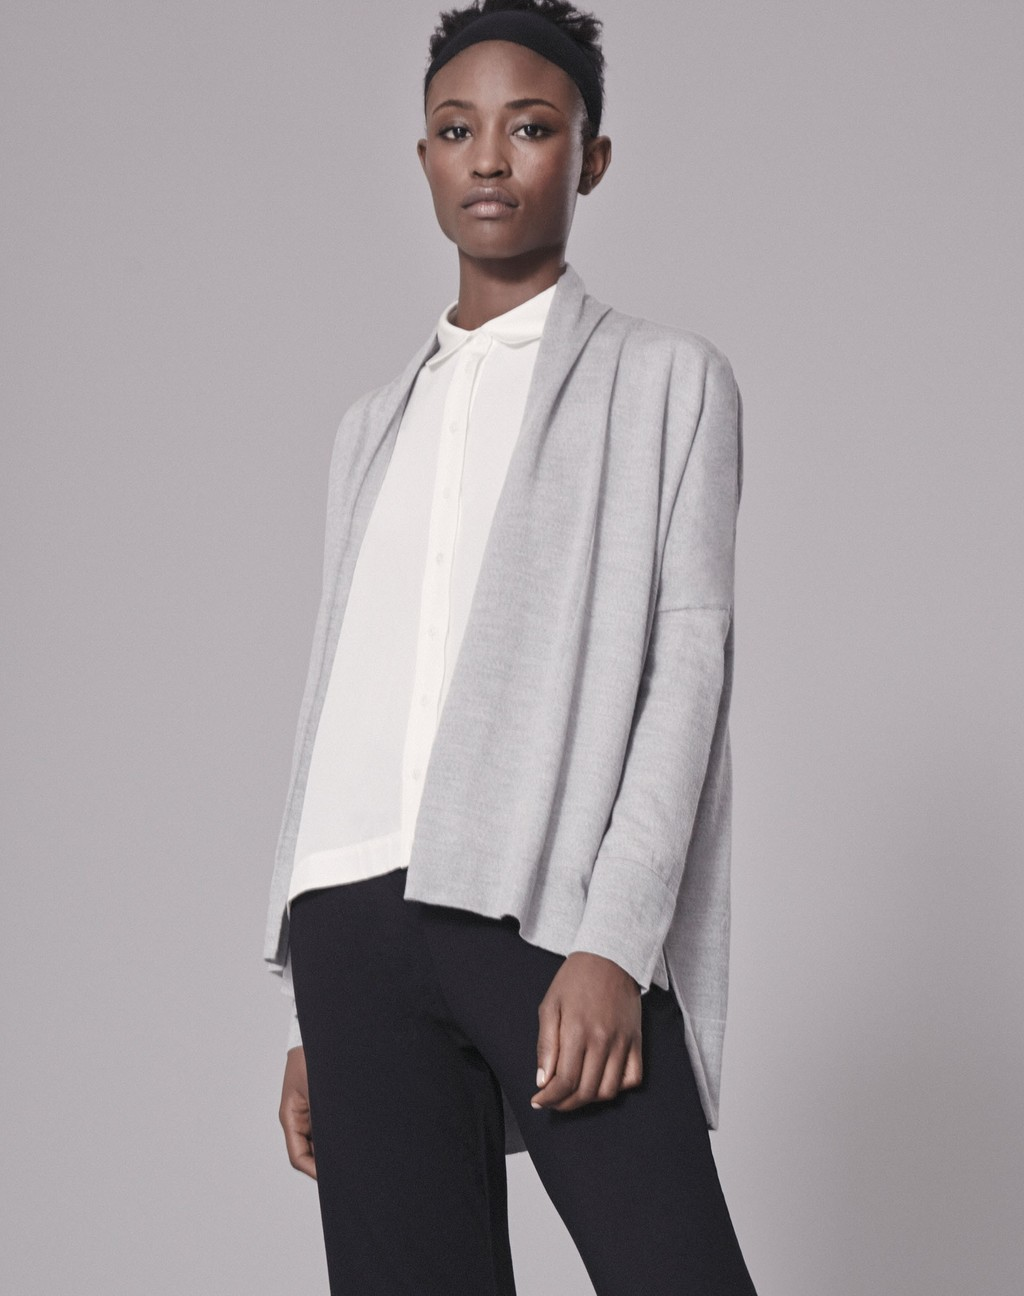 Super Fine 3/4 Cardigan - pattern: plain; neckline: shawl; style: open front; predominant colour: light grey; occasions: casual; length: standard; fibres: wool - 100%; fit: loose; sleeve length: long sleeve; sleeve style: standard; texture group: knits/crochet; pattern type: fabric; wardrobe: basic; season: a/w 2016